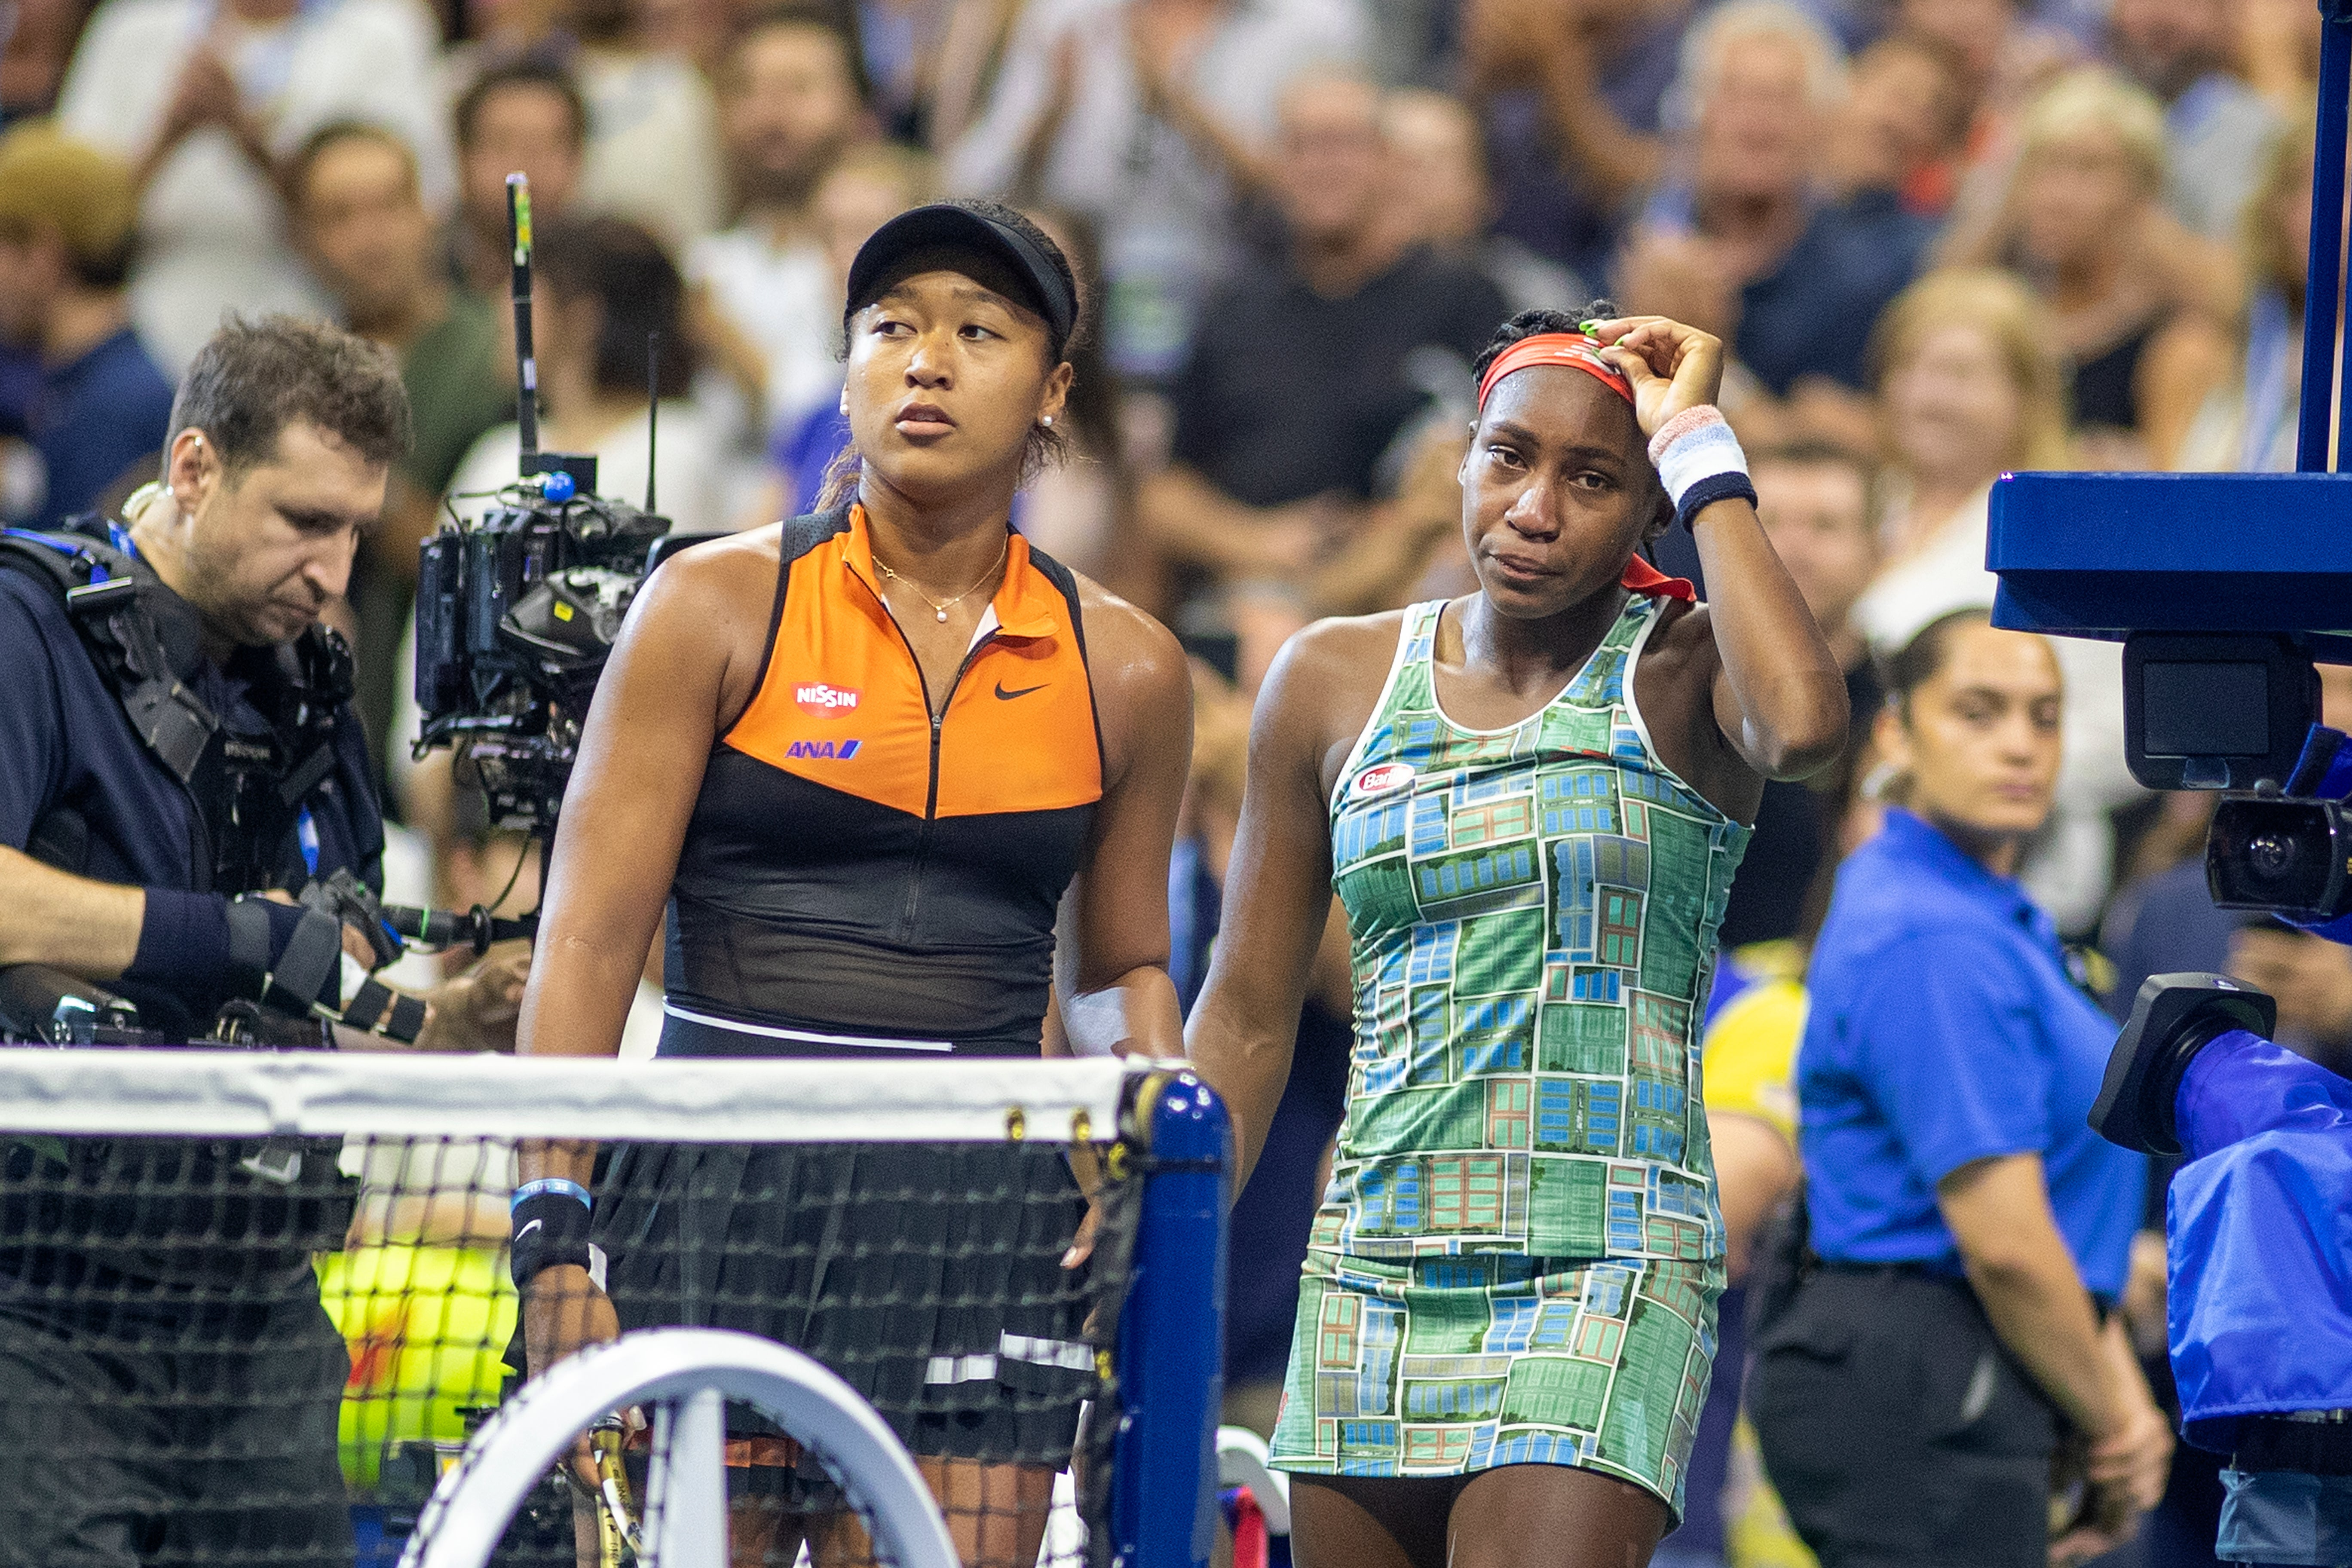 We Can't Get Over This U.S. Open Moment Between Naomi Osaka And Coco Gauff